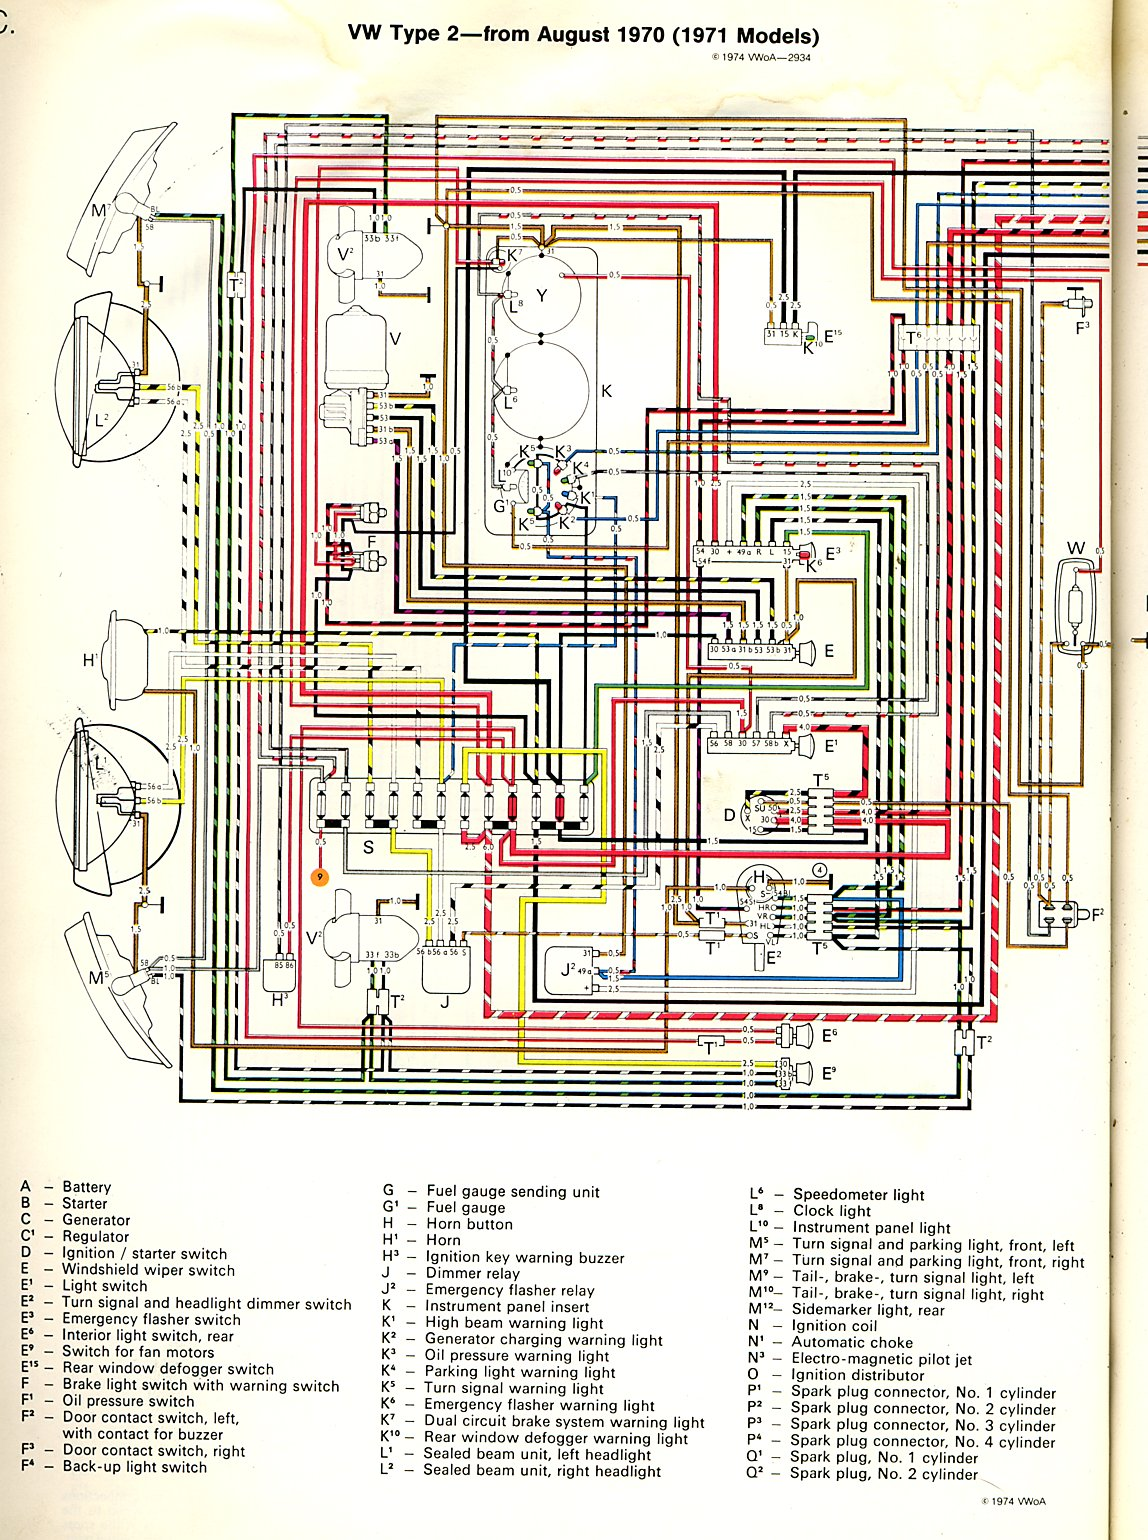 baybus_71a thesamba com type 2 wiring diagrams 1978 vw bus fuse box diagram at arjmand.co